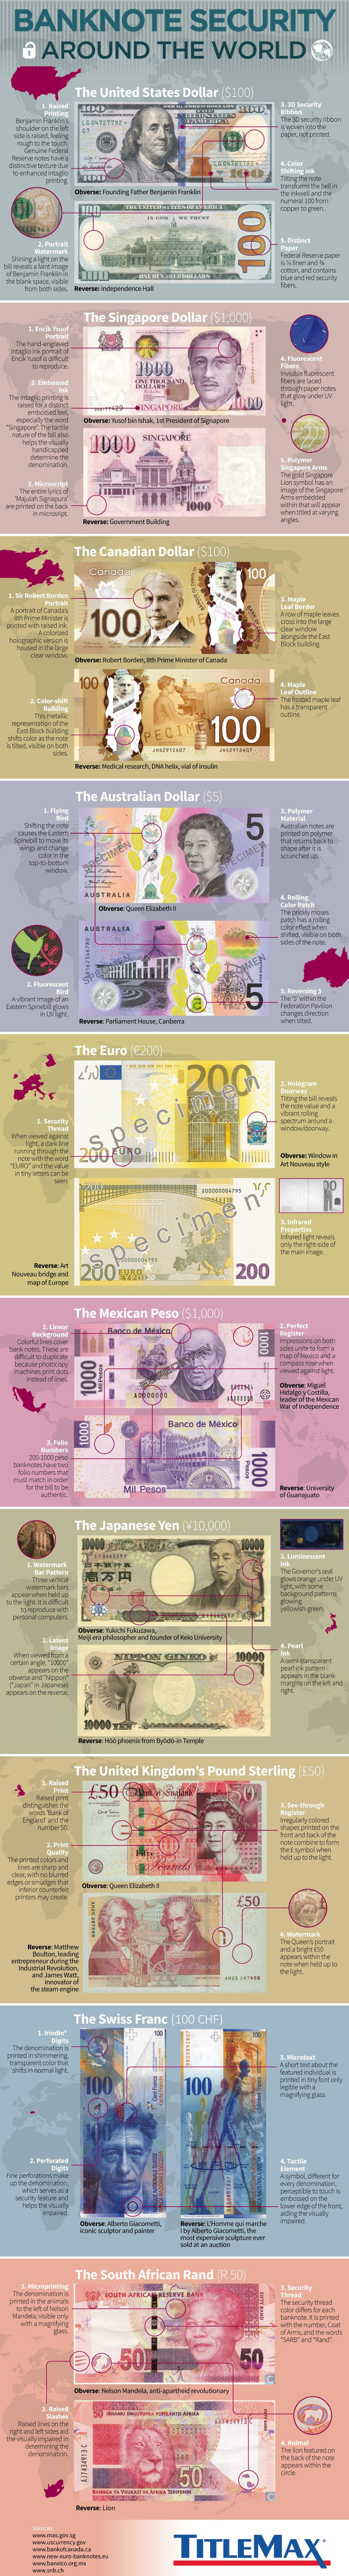 Banknotes Security Features